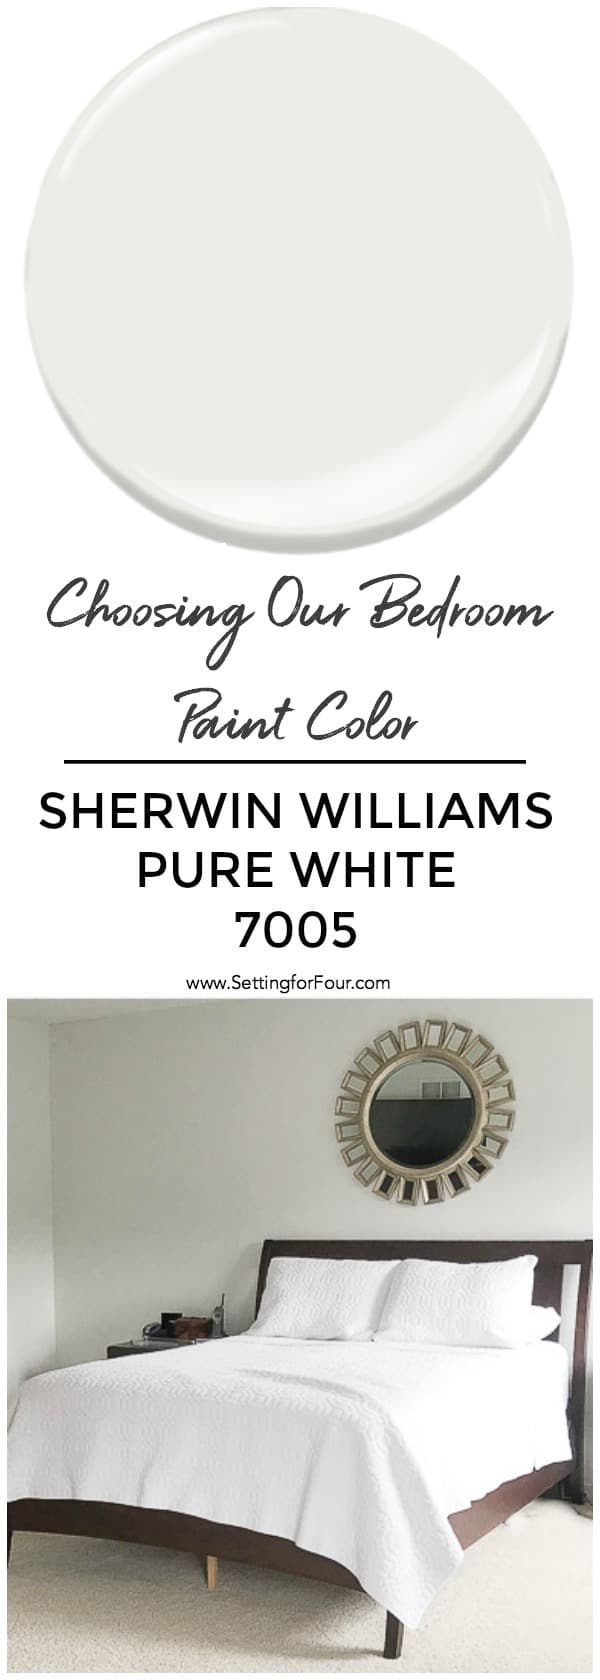 How to choose a bedroom paint color. See why we chose Sherwin Williams Pure White! #paint #color #painting #decor #bedroom #undertones #wall